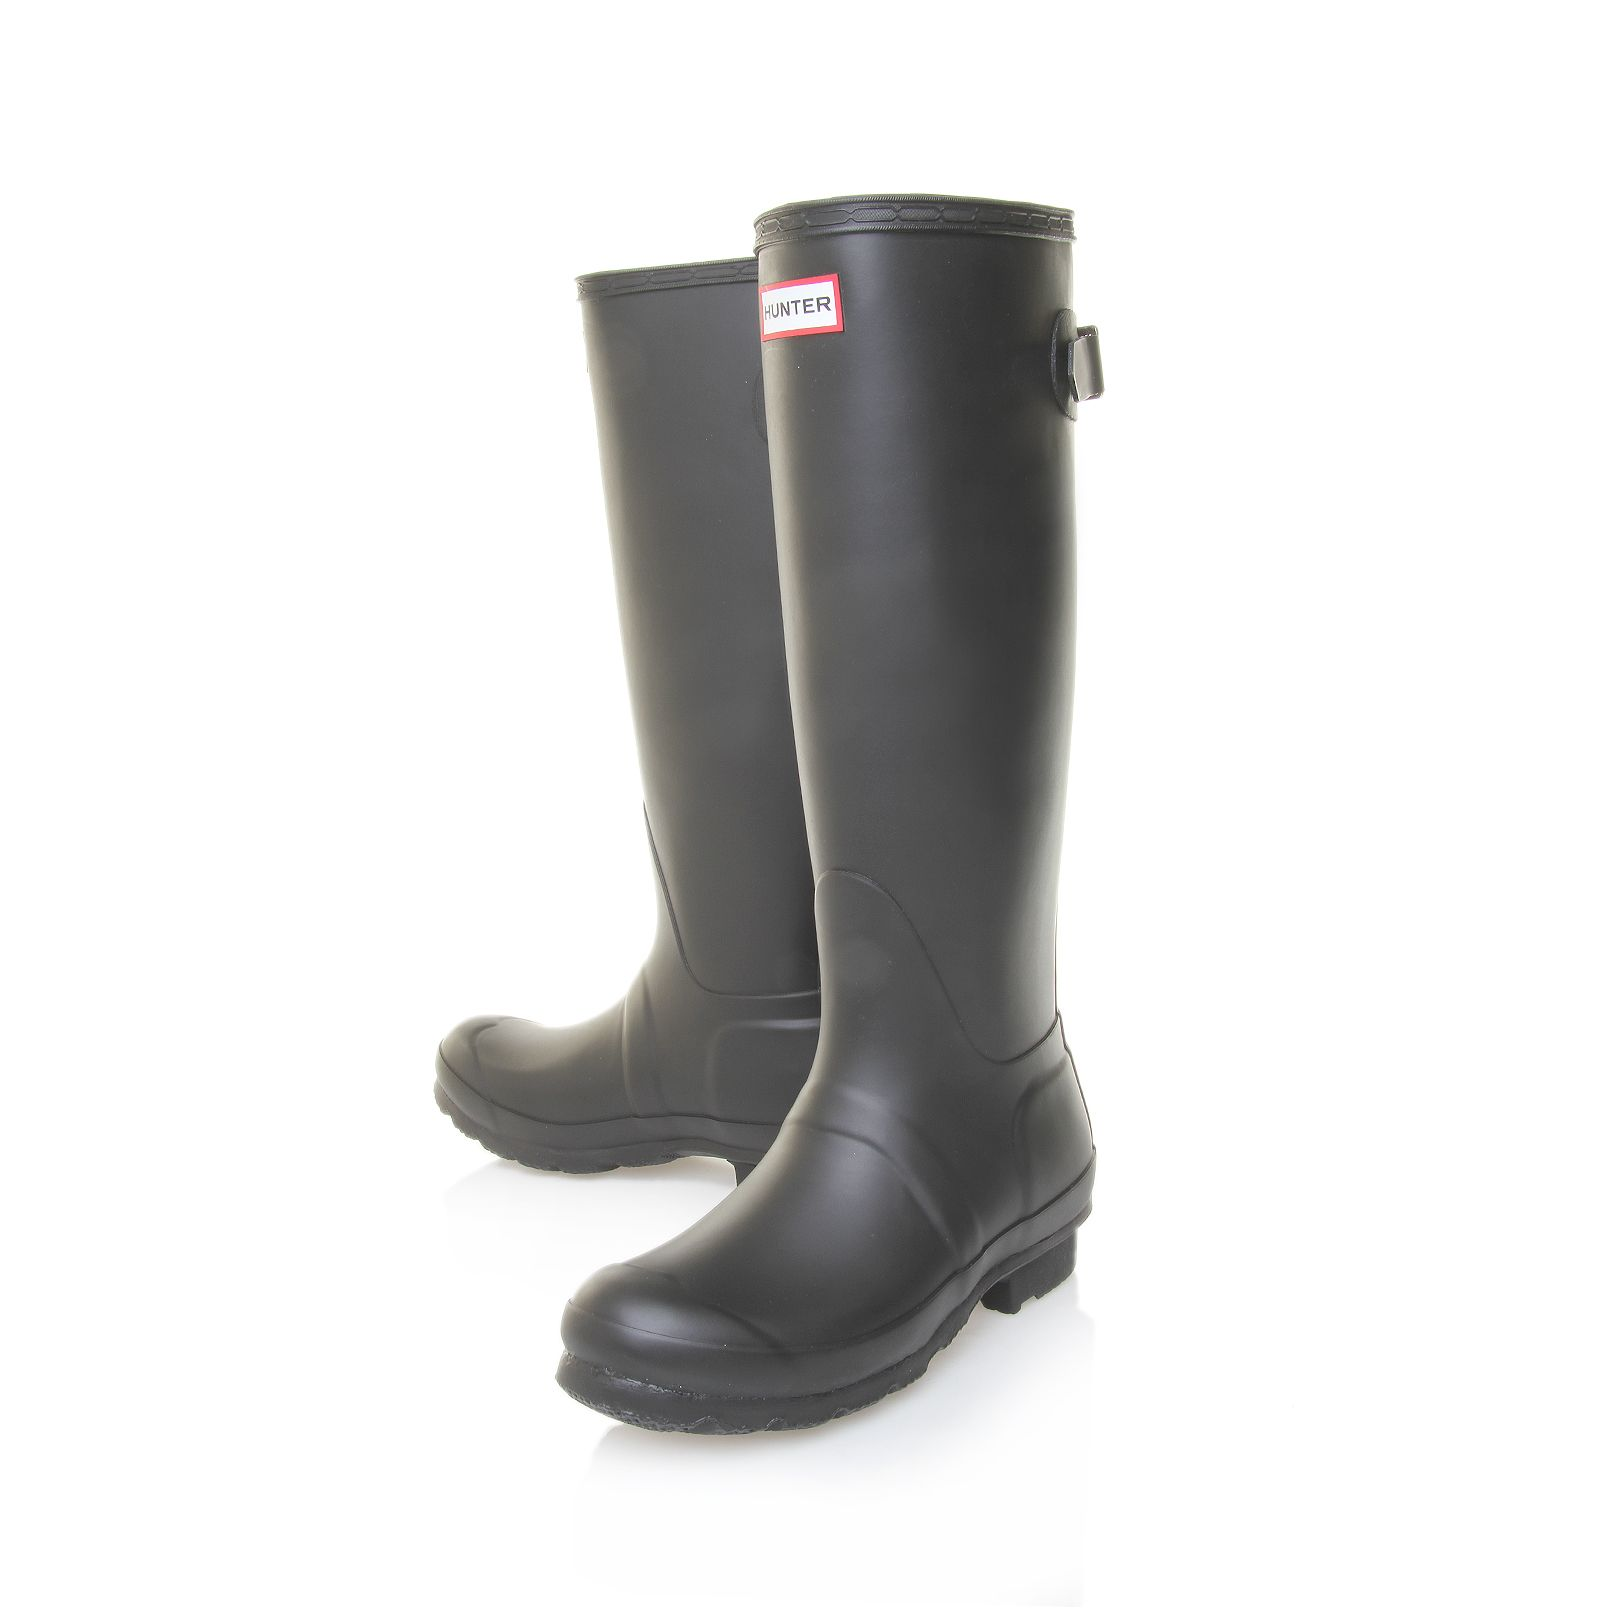 Original bk adjust wellington boots